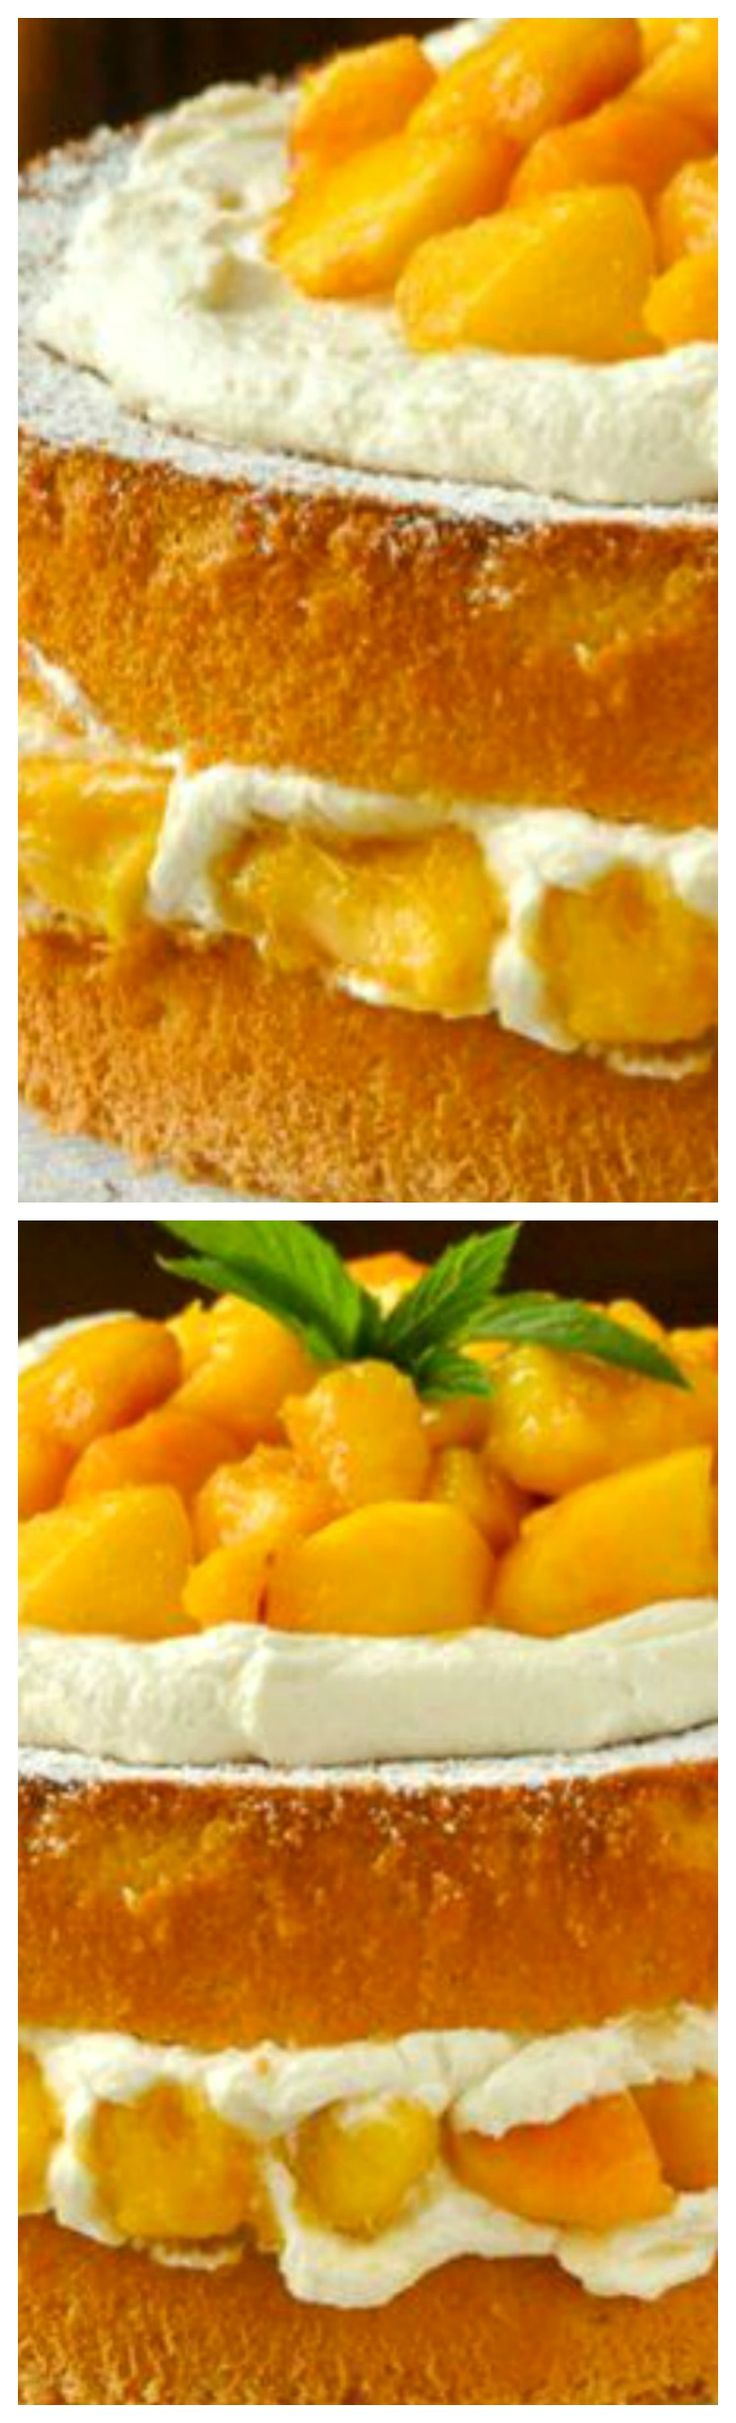 Bourbon Peach Shortcake ~ A light as air sponge cake gets layered with vanilla whipped cream and peaches which have been marinated in vanilla and bourbon.